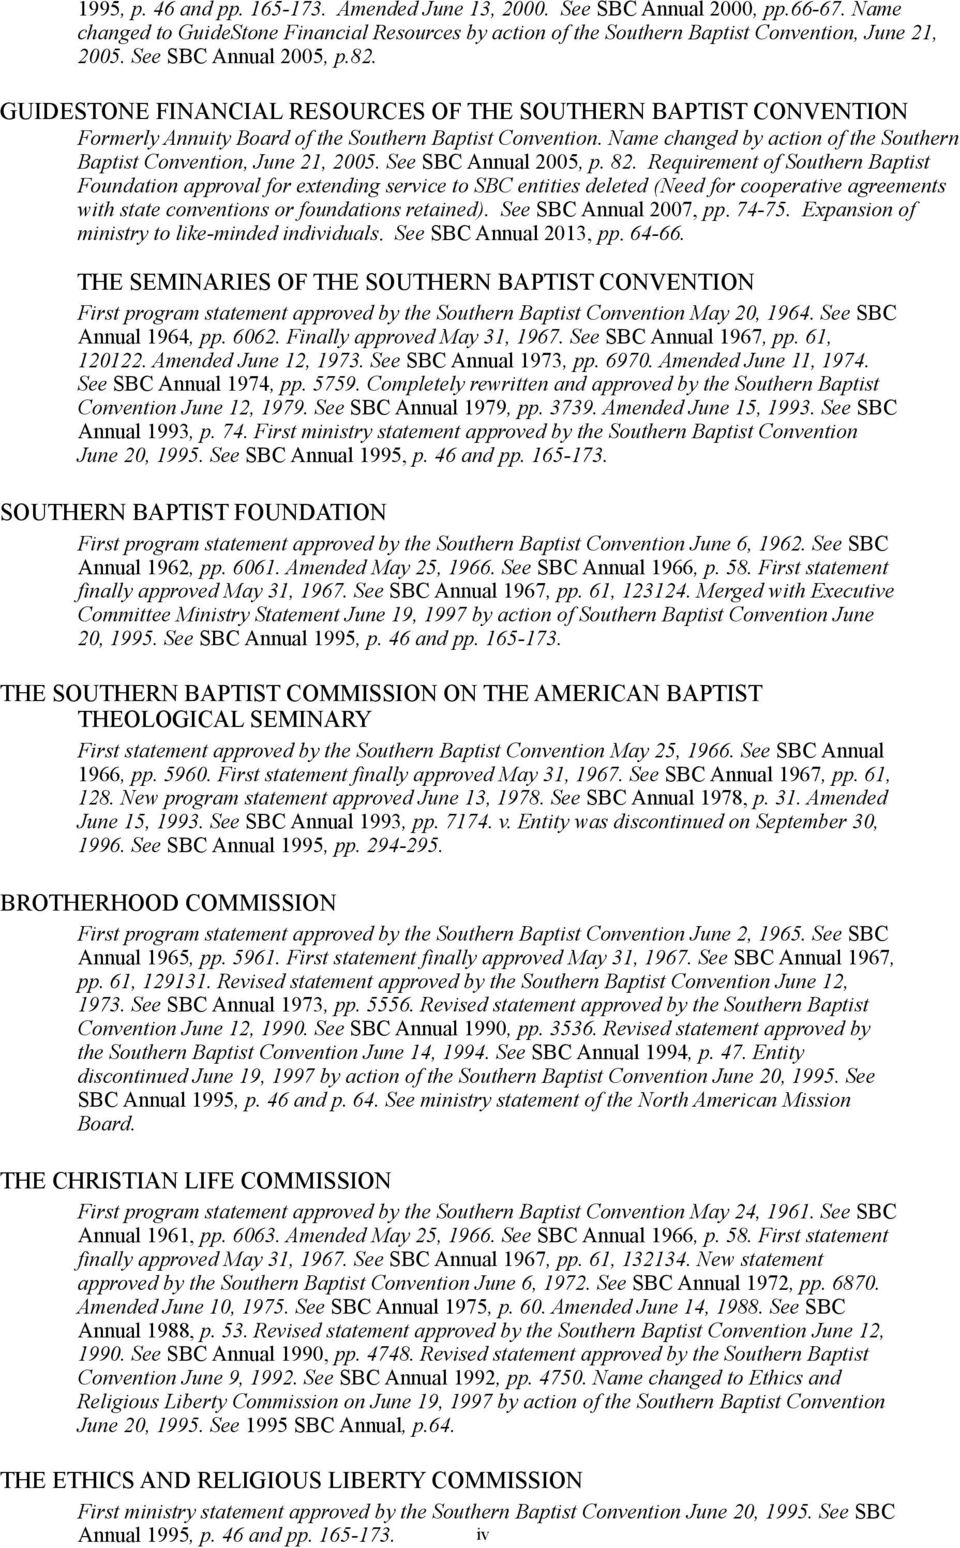 Name changed by action of the Southern Baptist Convention, June 21, 2005. See SBC Annual 2005, p. 82.